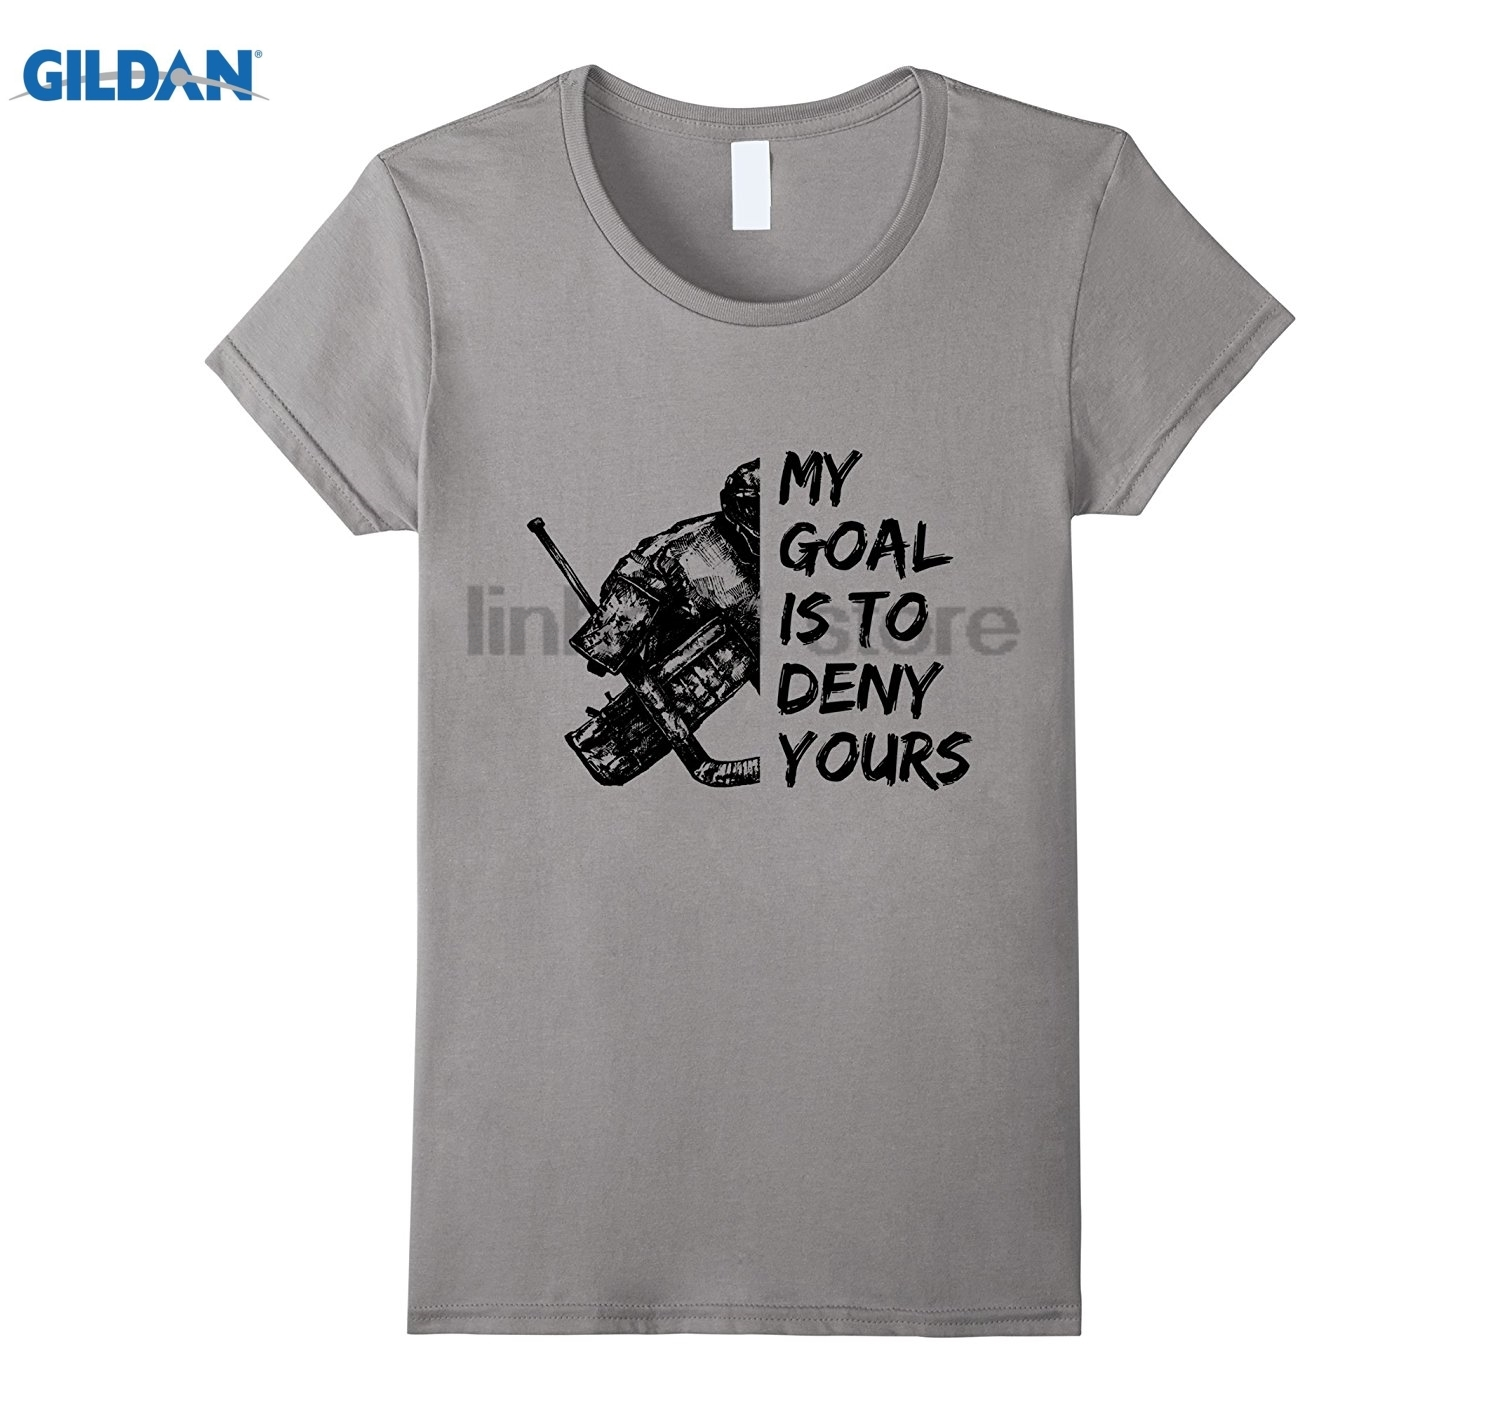 GILDAN MY GOAL IS TO DENY YOURS T-SHIRT MOM T-SHIRT Hot Womens T-shirt glasses Womens T- ...